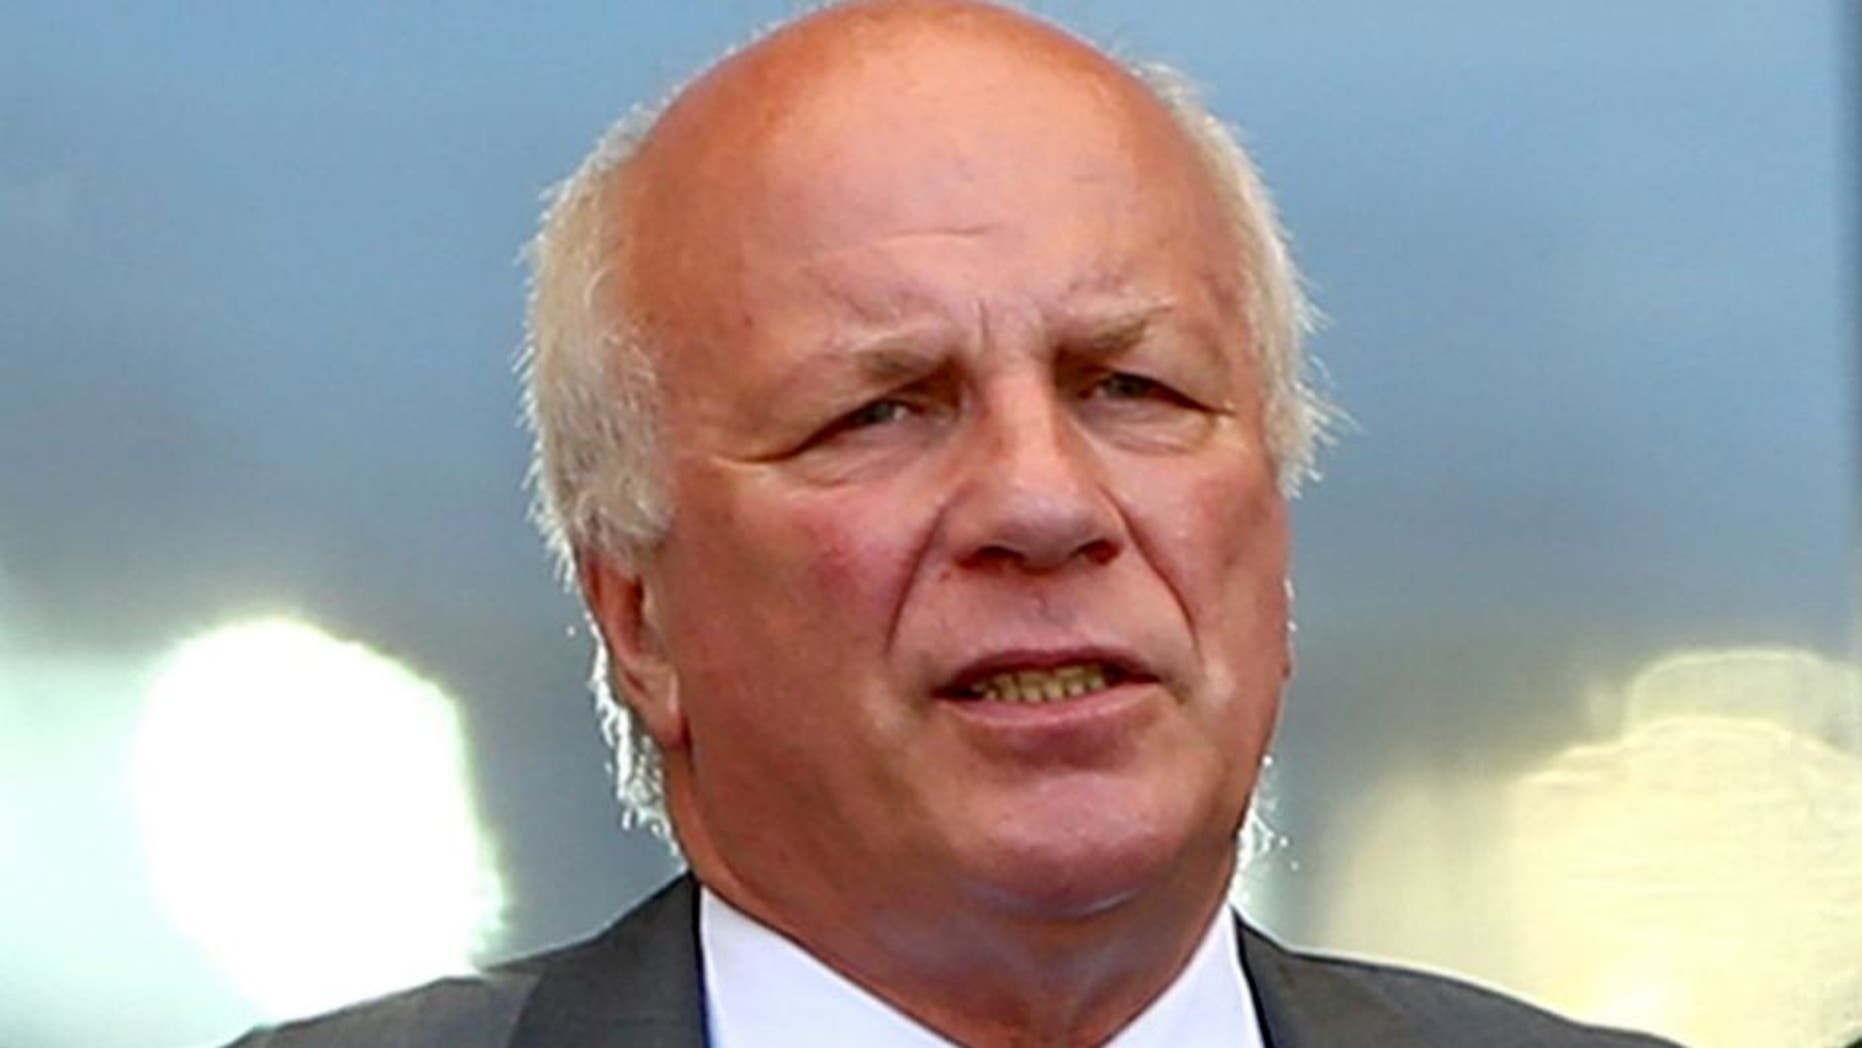 BELO HORIZONTE, BRAZIL - JUNE 24: Chairman of the FA Greg Dyke look on during the 2014 FIFA World Cup Brazil Group D match between Costa Rica and England at Estadio Mineirao on June 24, 2014 in Belo Horizonte, Brazil. (Photo by Paul Gilham/Getty Images)